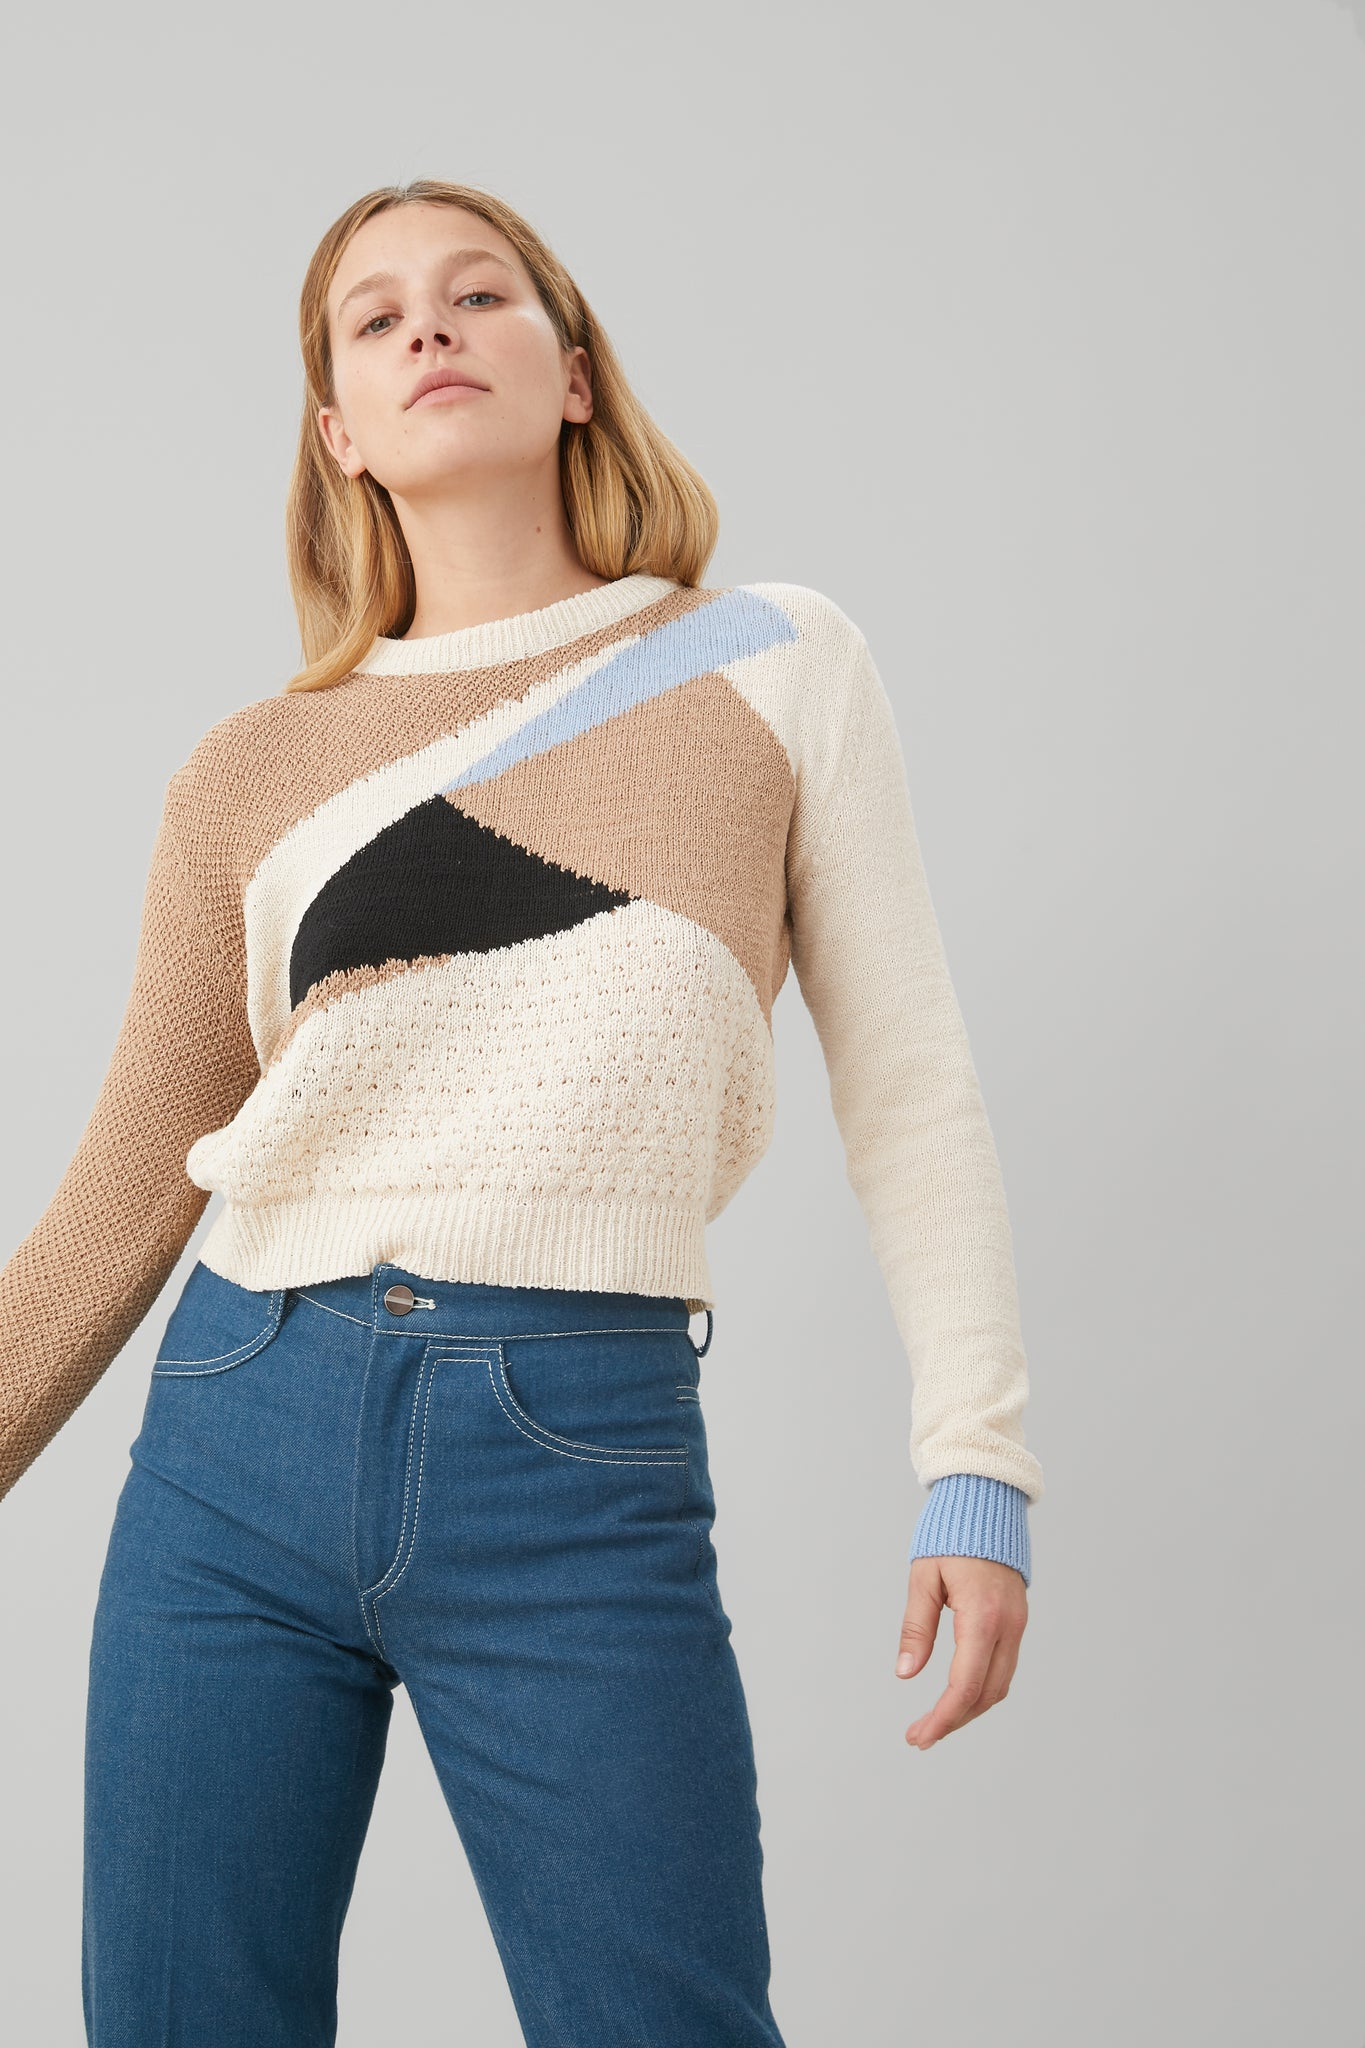 PATCHWORK PULLOVER IN SKY BLUE MERINO